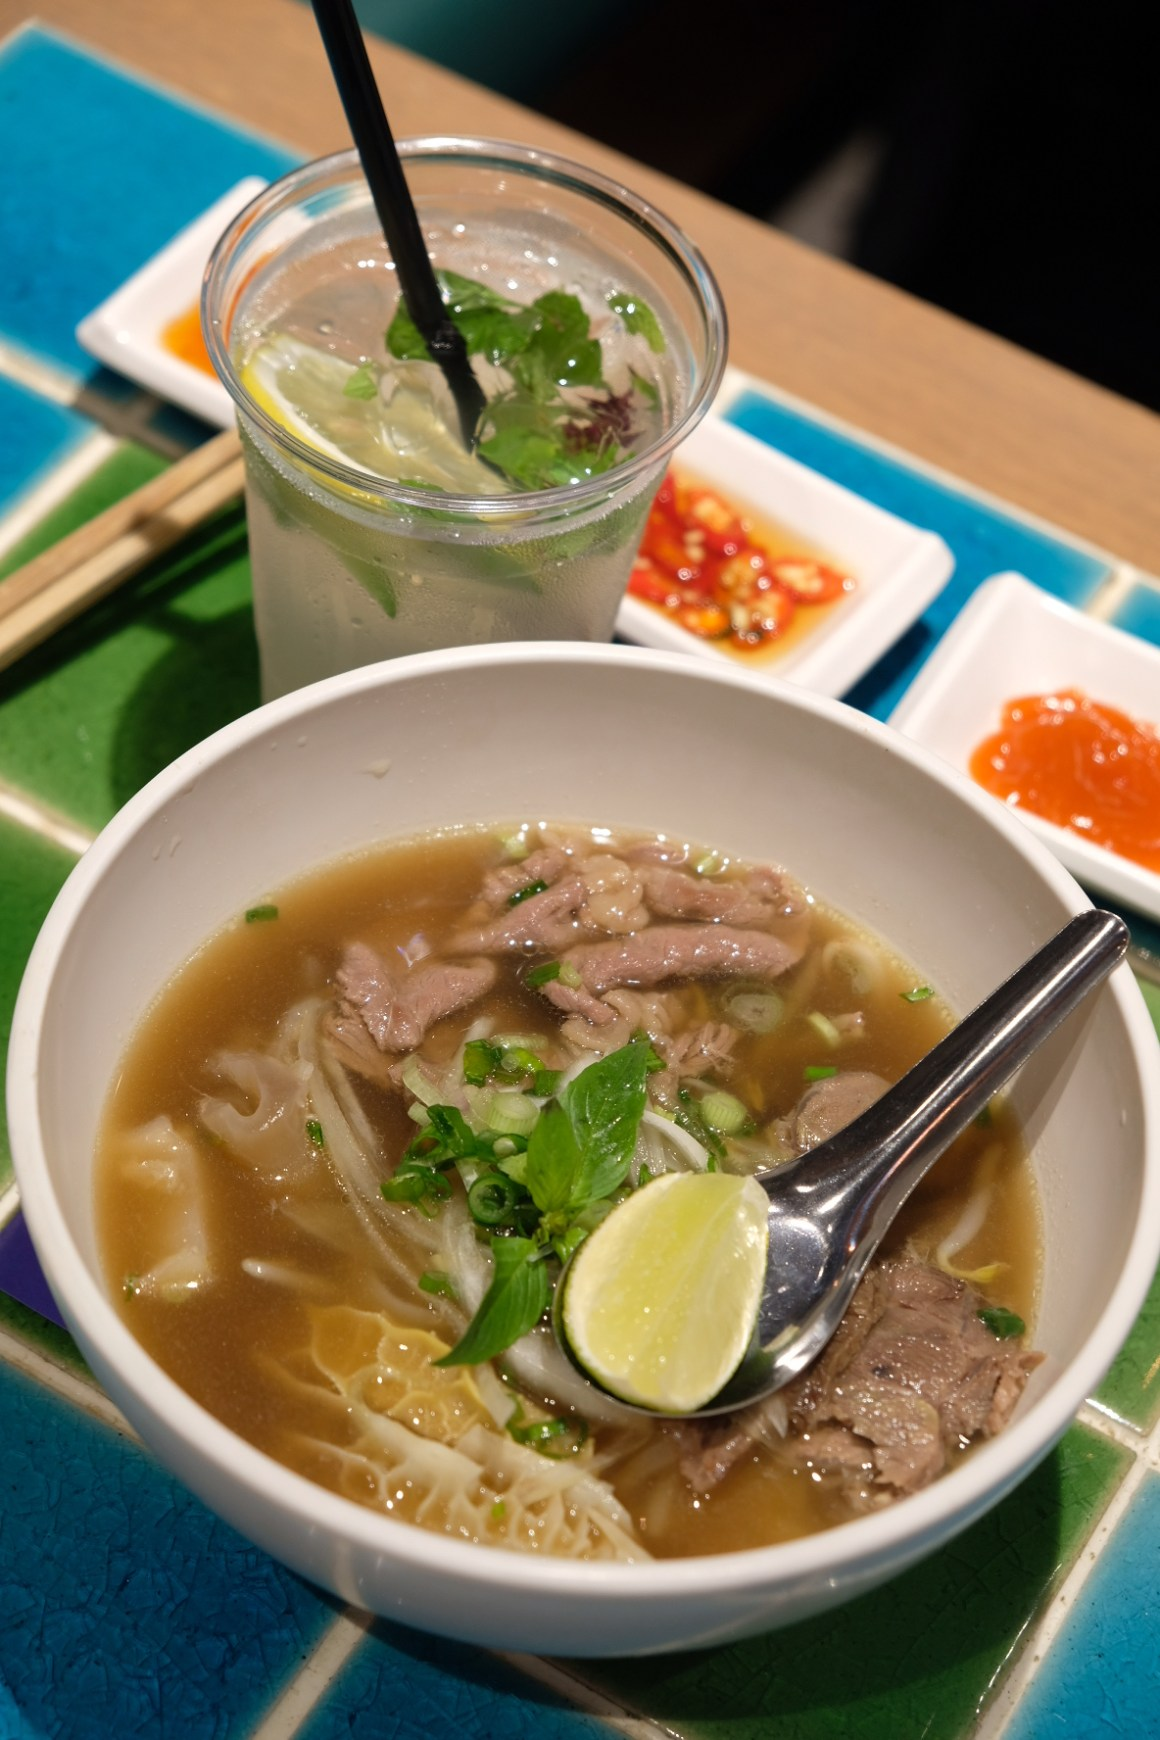 First-Ever Pho Day By Pho Street Going At SGD 0.60 per bowl - Signature Pho Beef Combination